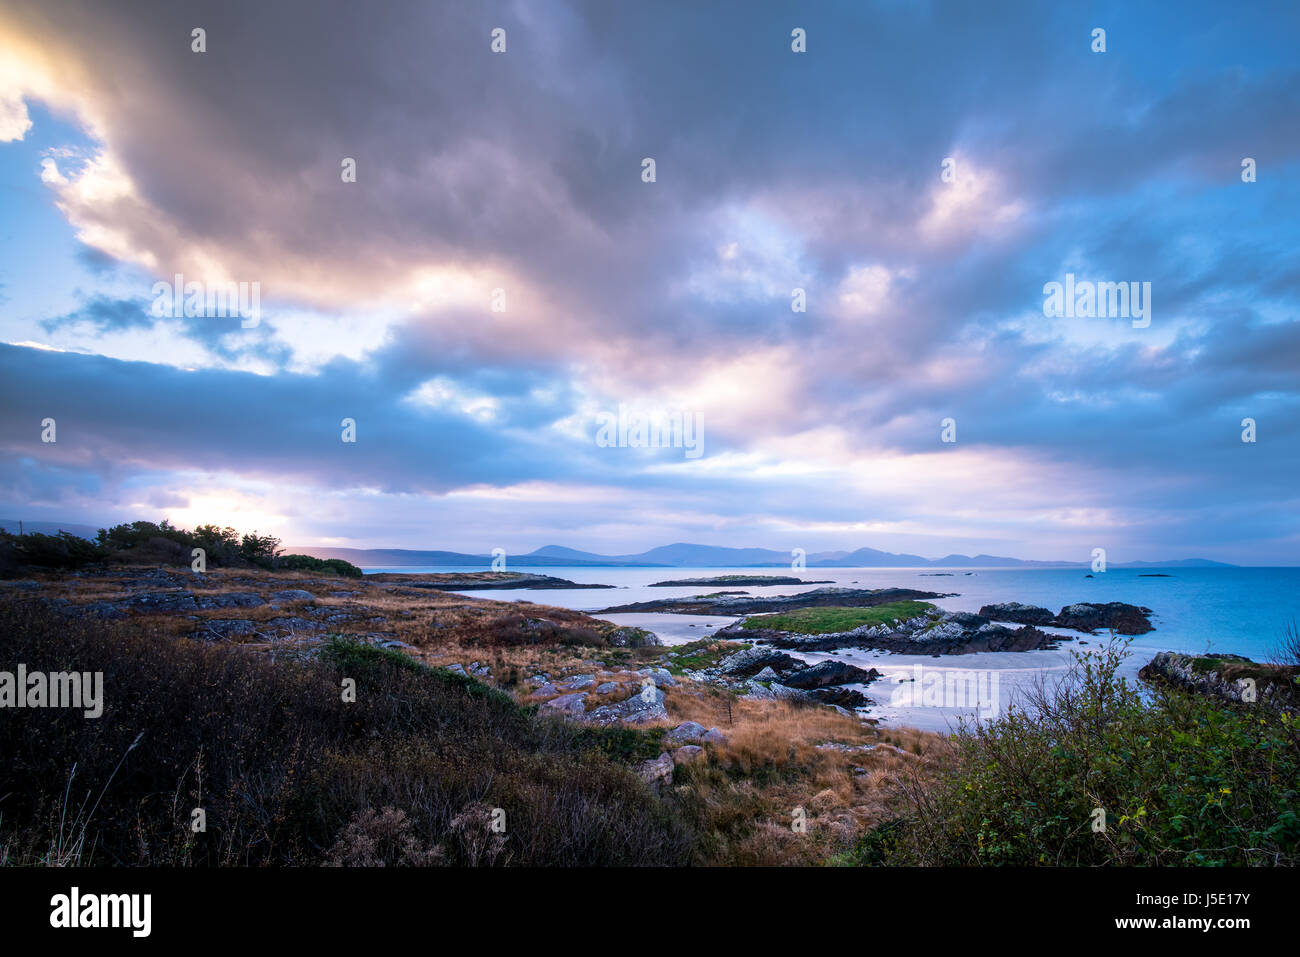 A sunrise over water in County Kerry. - Stock Image